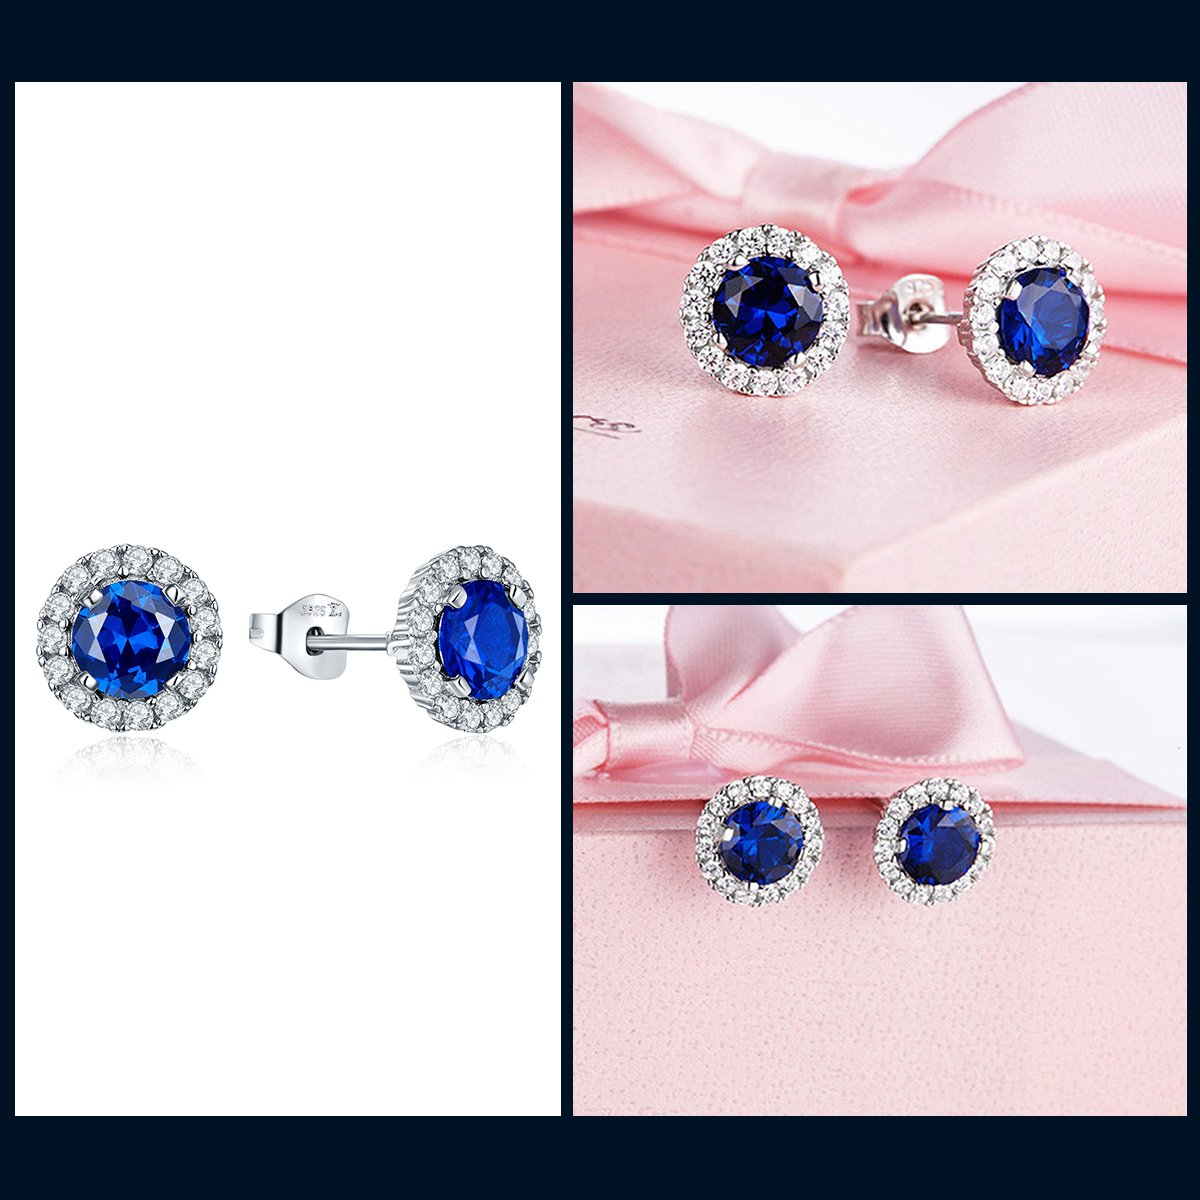 JO WISDOM 925 Sterling Silver Round Gemstone and Blue Created Sapphire Halo Stud Earrings by JO WISDOM (Image #5)